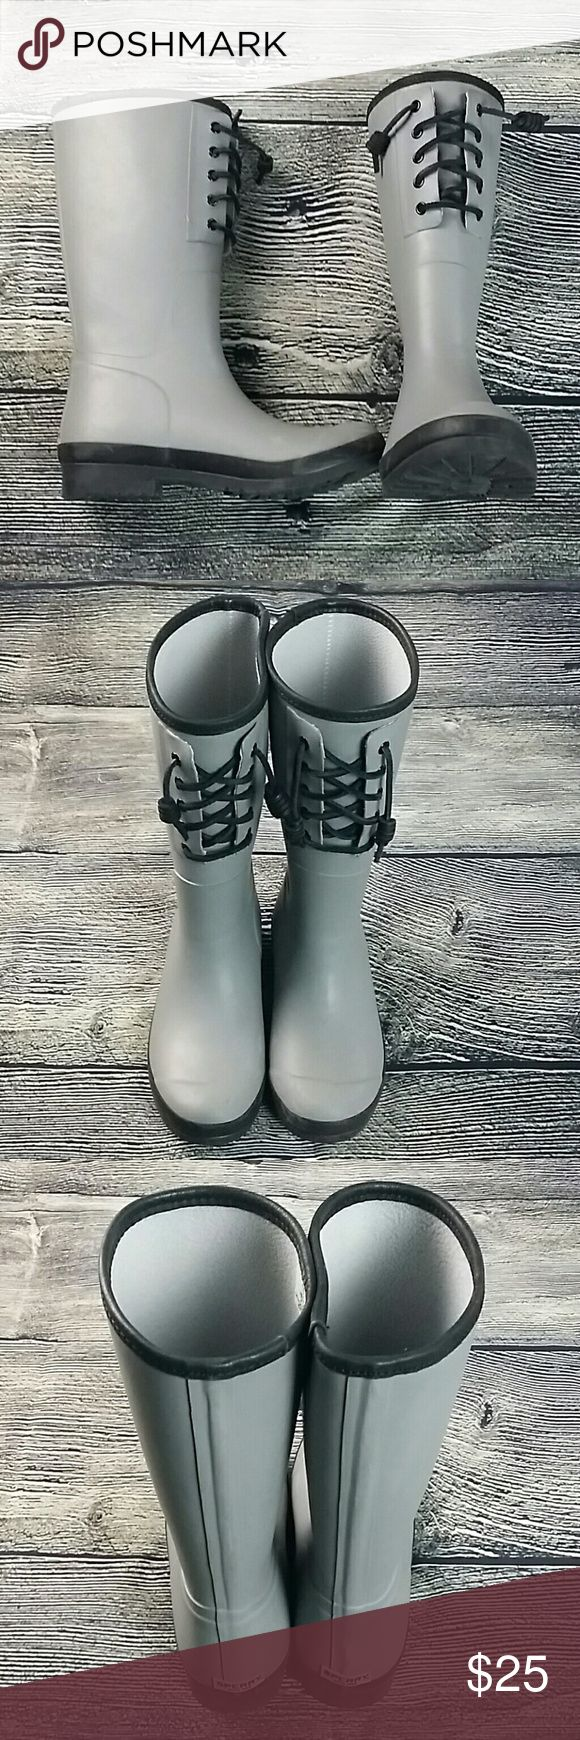 Sz 7 Sperry Top Sider waterproof rubber rain boots Sperry Top Sider waterproof rubber rain boots Women's size 7 STS94650 Gray with black lace Excellent preowned condition Sperry Top-Sider Shoes Winter & Rain Boots